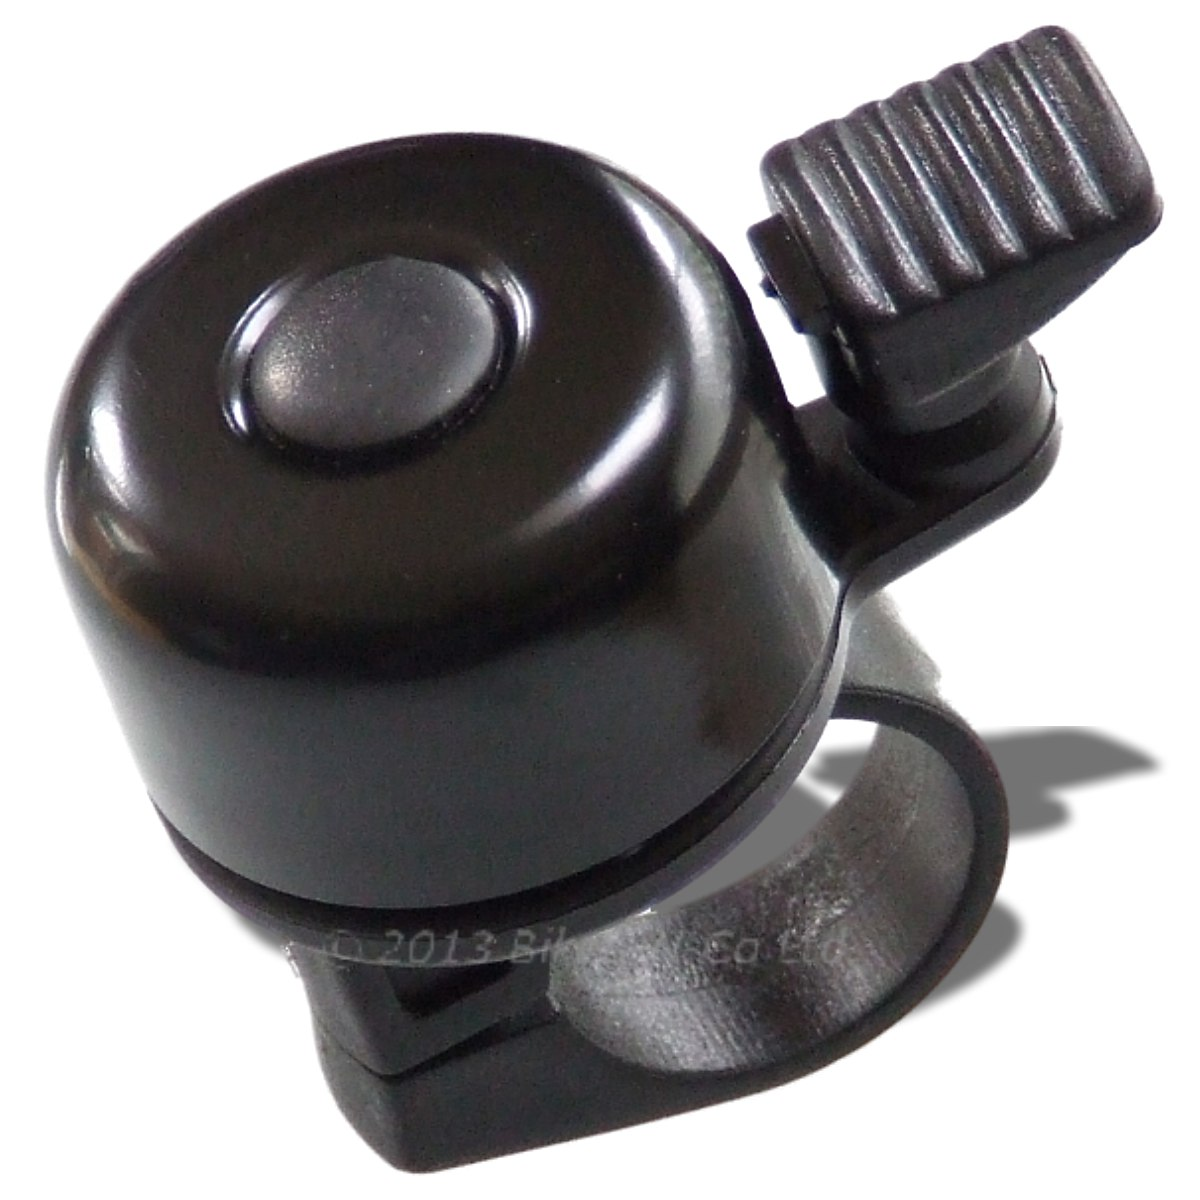 Flick Bell - Lightweight Ting Bell, Black Or Silver